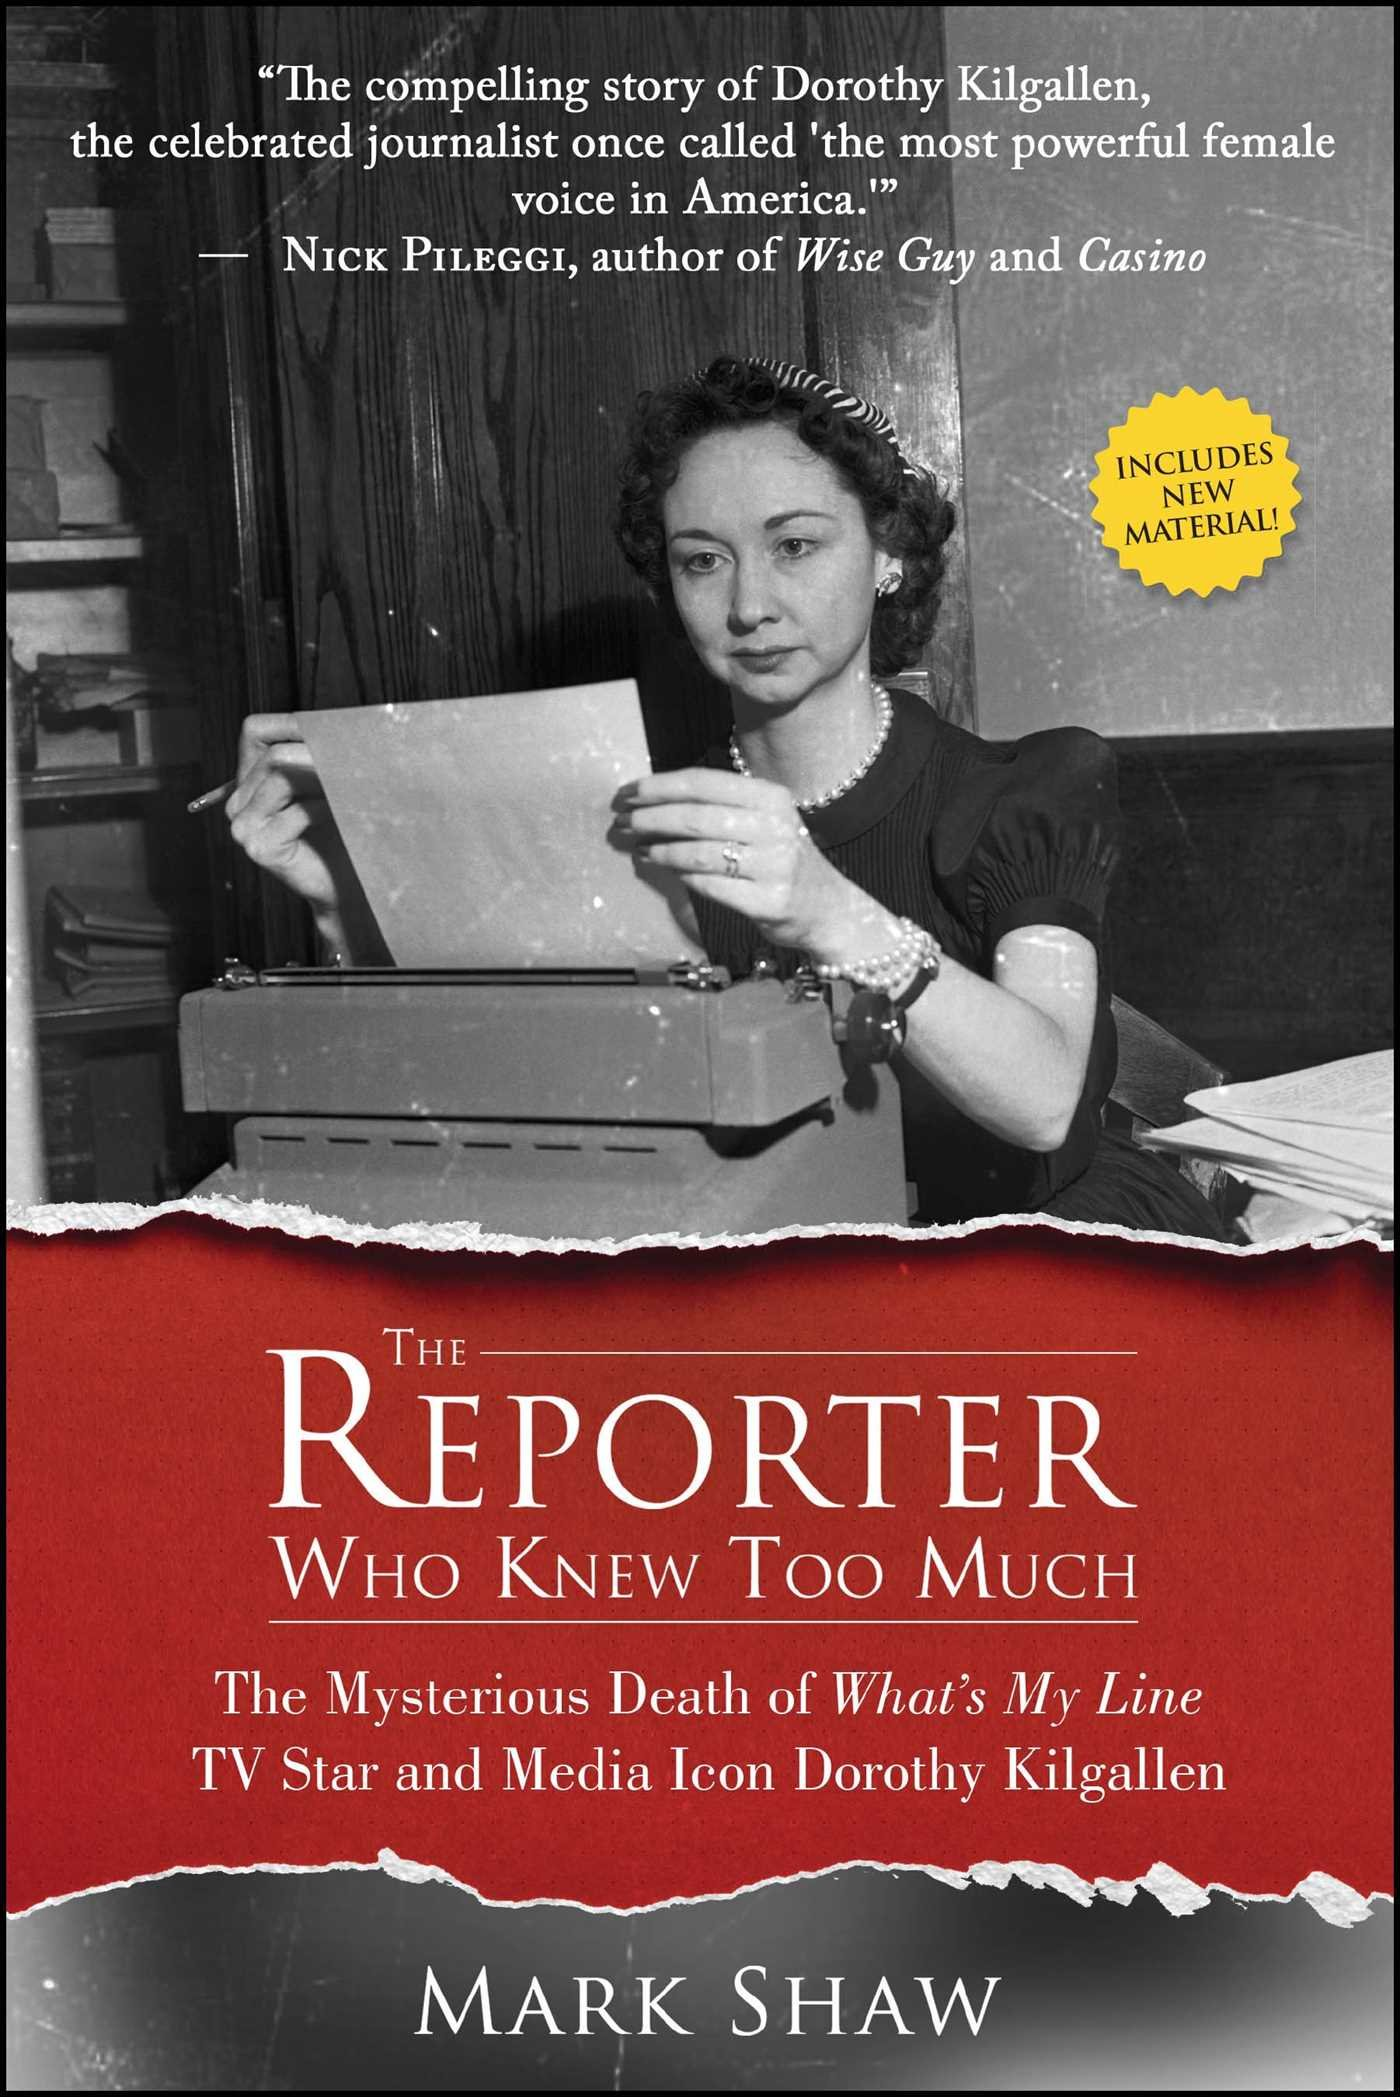 the-reporter-who-knew-too-much-the-mysterious-death-of-what-s-my-line-tv-star-and-media-icon-dorothy-kilgallen